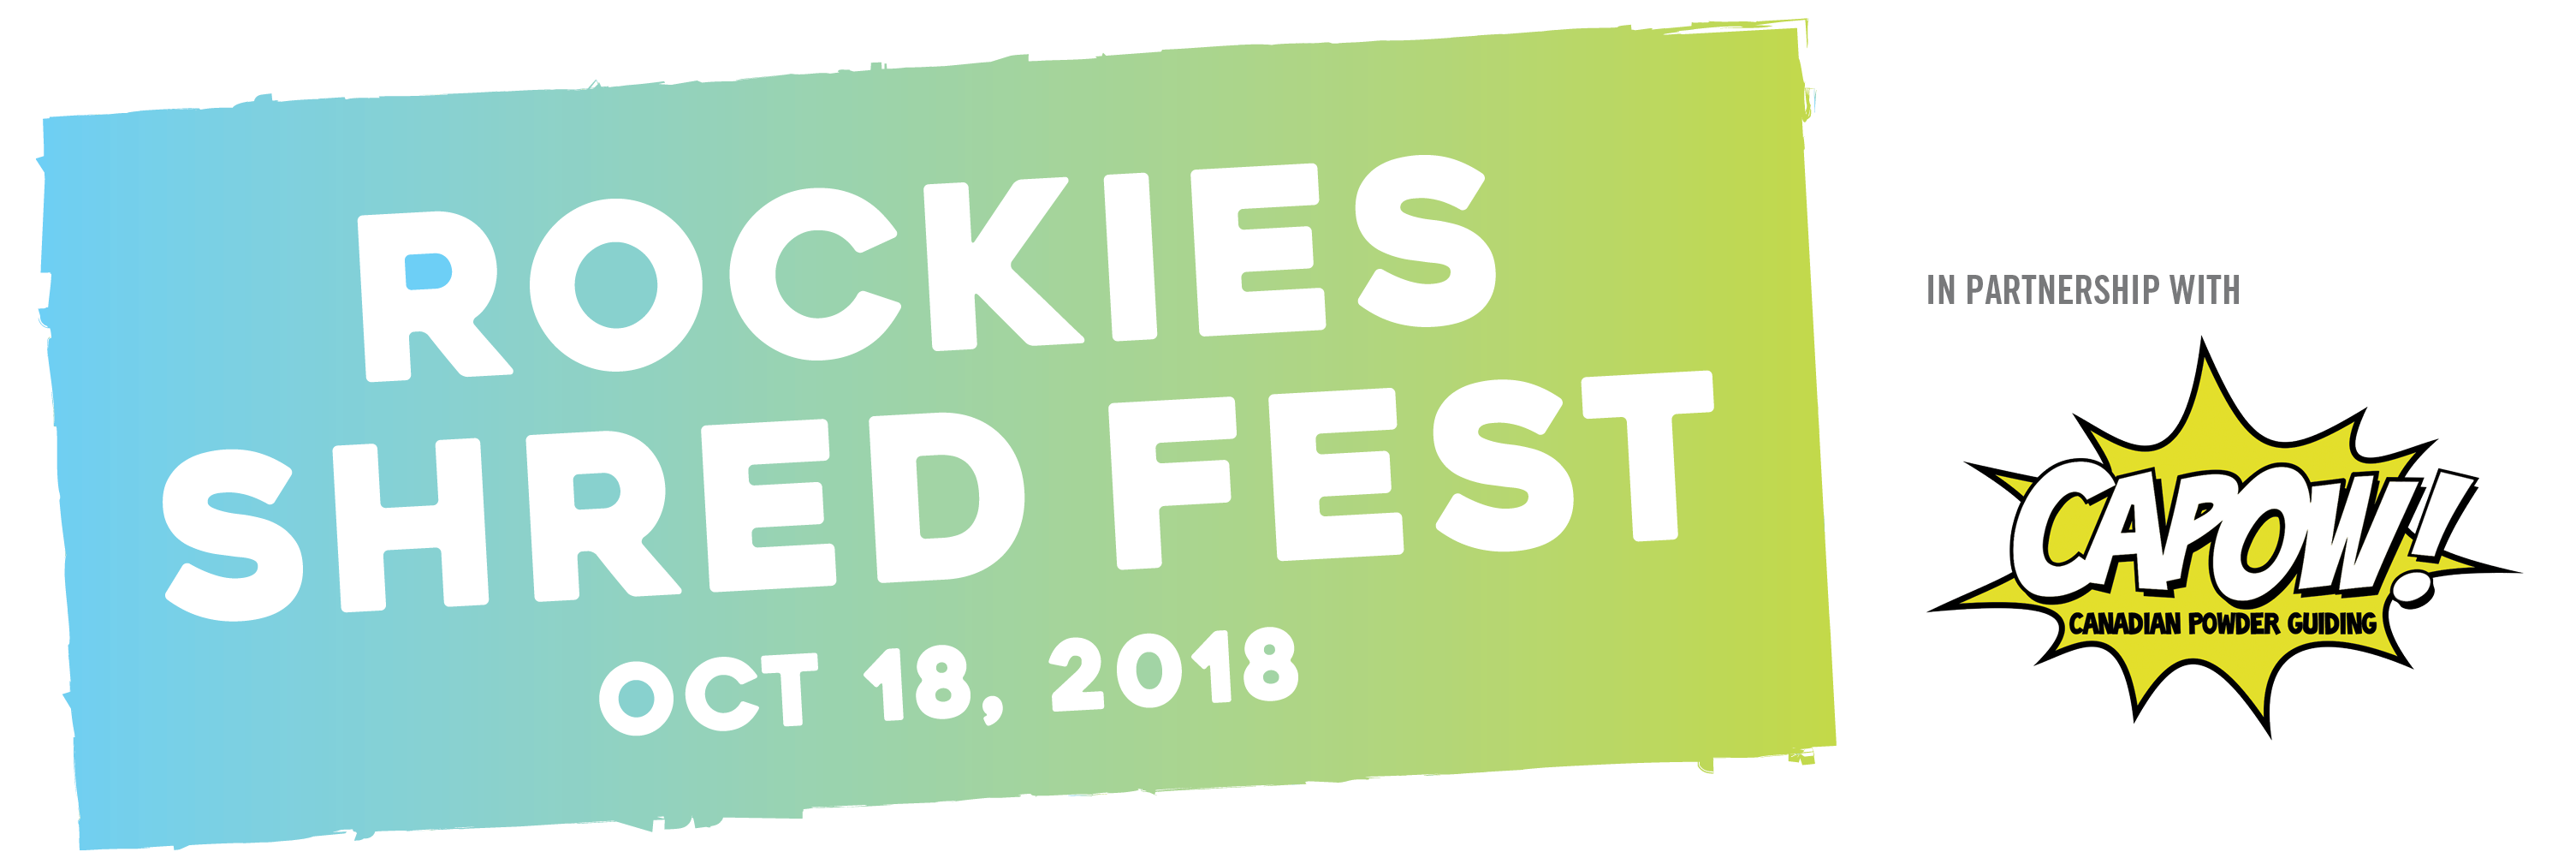 Rockies Shred Fest – Oct. 18, 2018